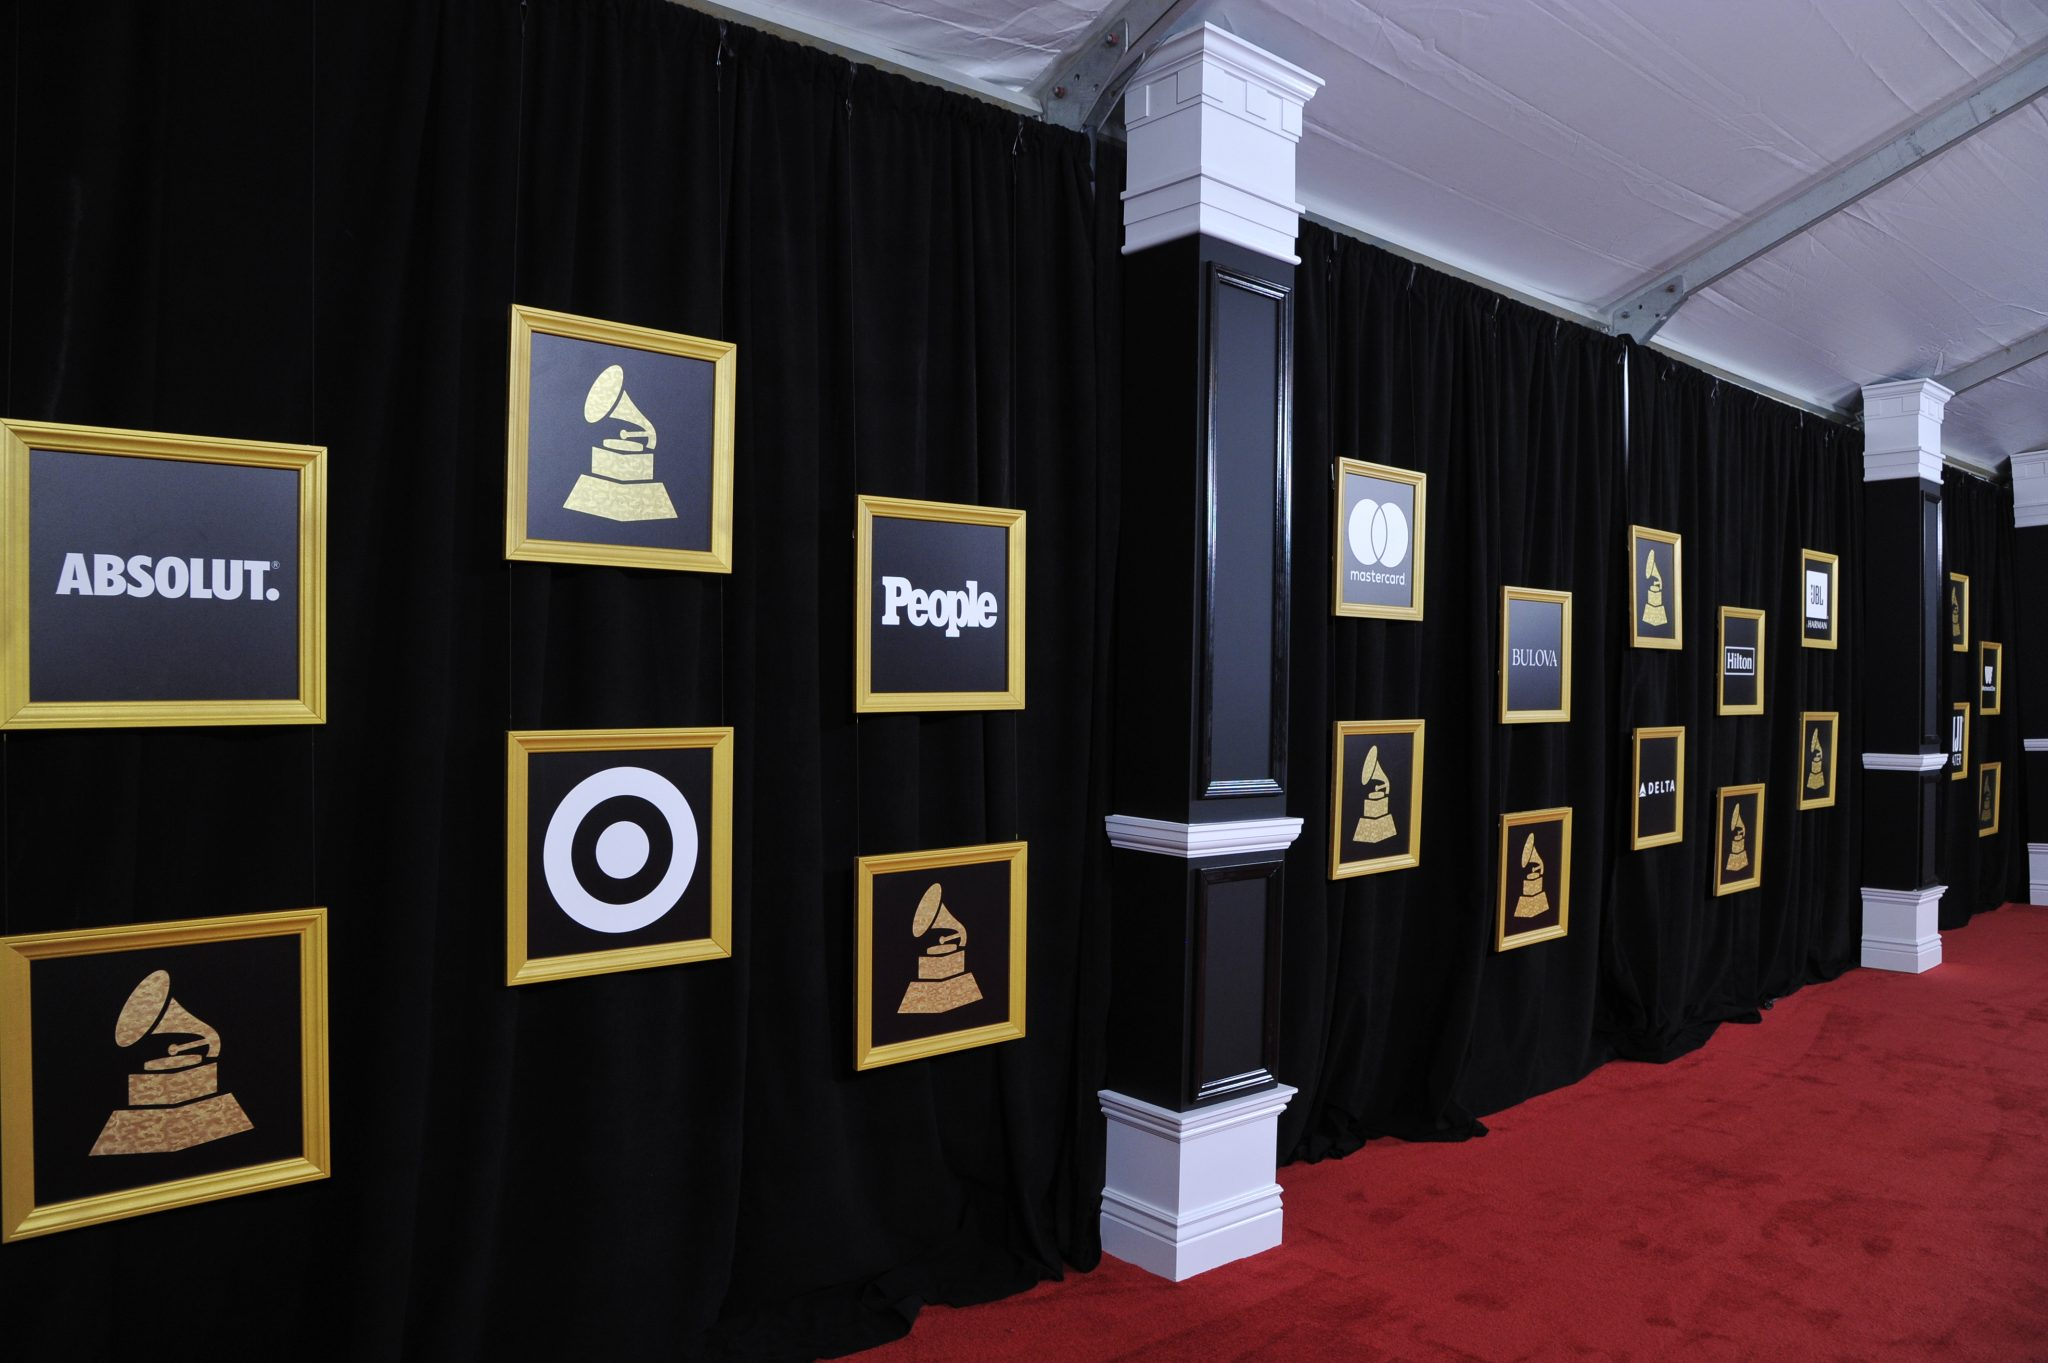 The 59th GRAMMY Awards at STAPLES Center on February 12, 2017 in Los Angeles, California.